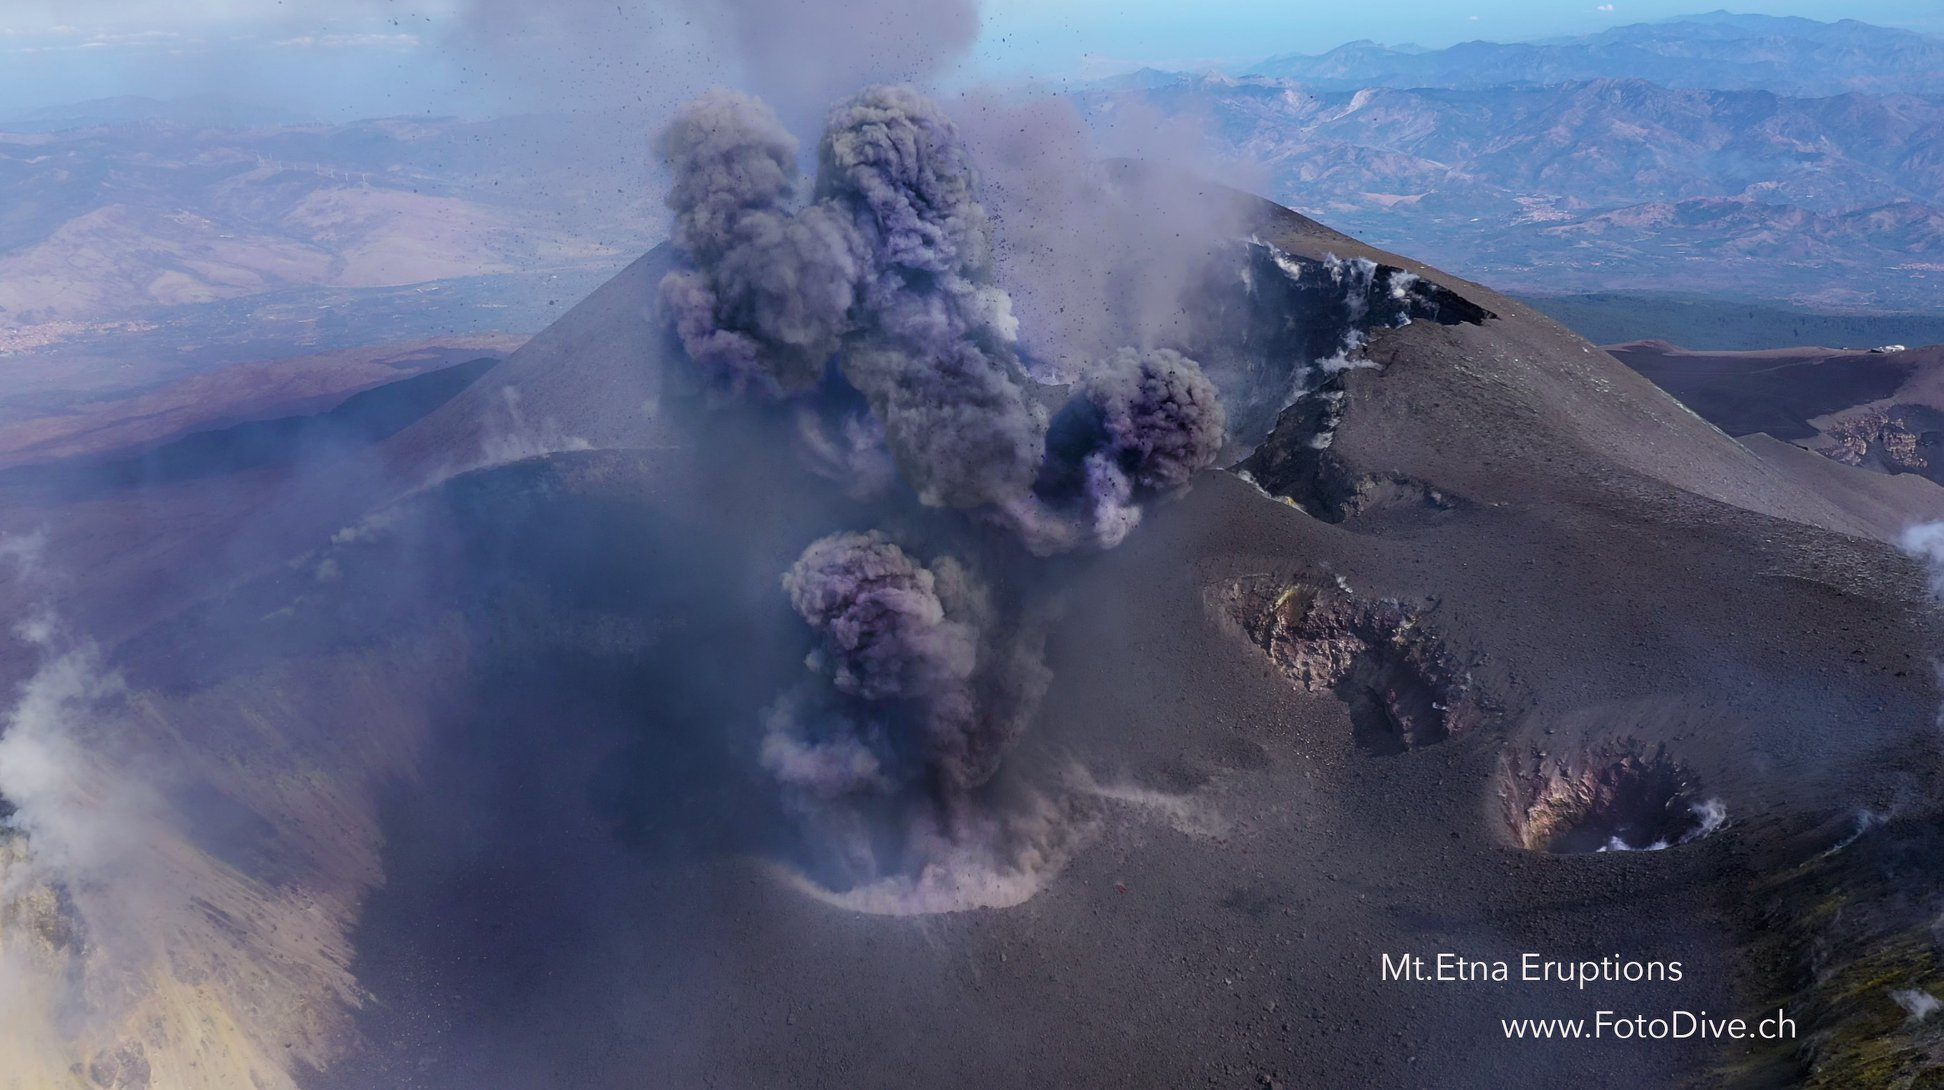 11 Octobre 2019. FR. Italie / Sicile : Etna , Hawaii : Mauna Loa , Colombie : Nevado del Ruiz , Mexique : Popocatepetl .